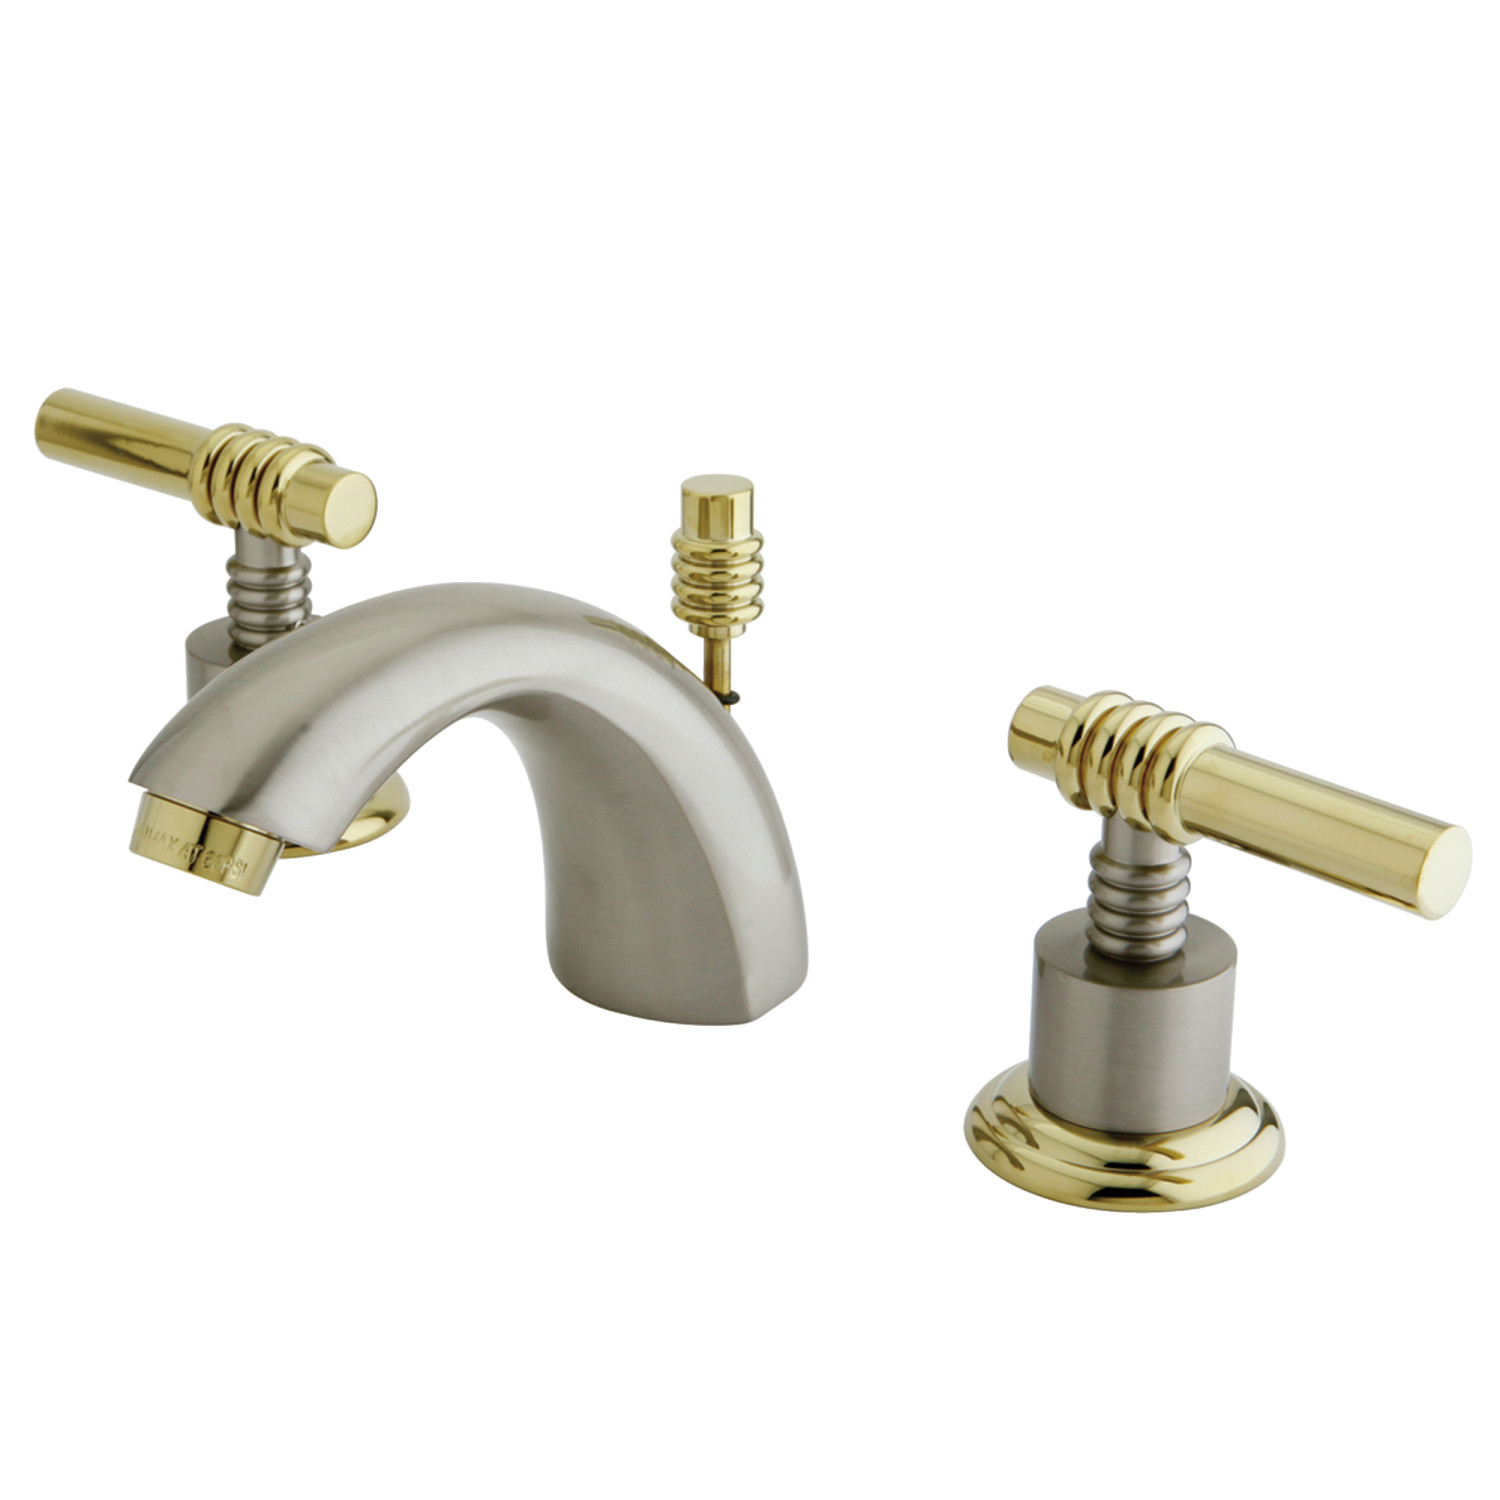 Peachy Elements Of Design Es2959Ml Mini Widespread Lavatory Faucet Brushed Nickel Polished Brass Interior Design Ideas Gentotryabchikinfo